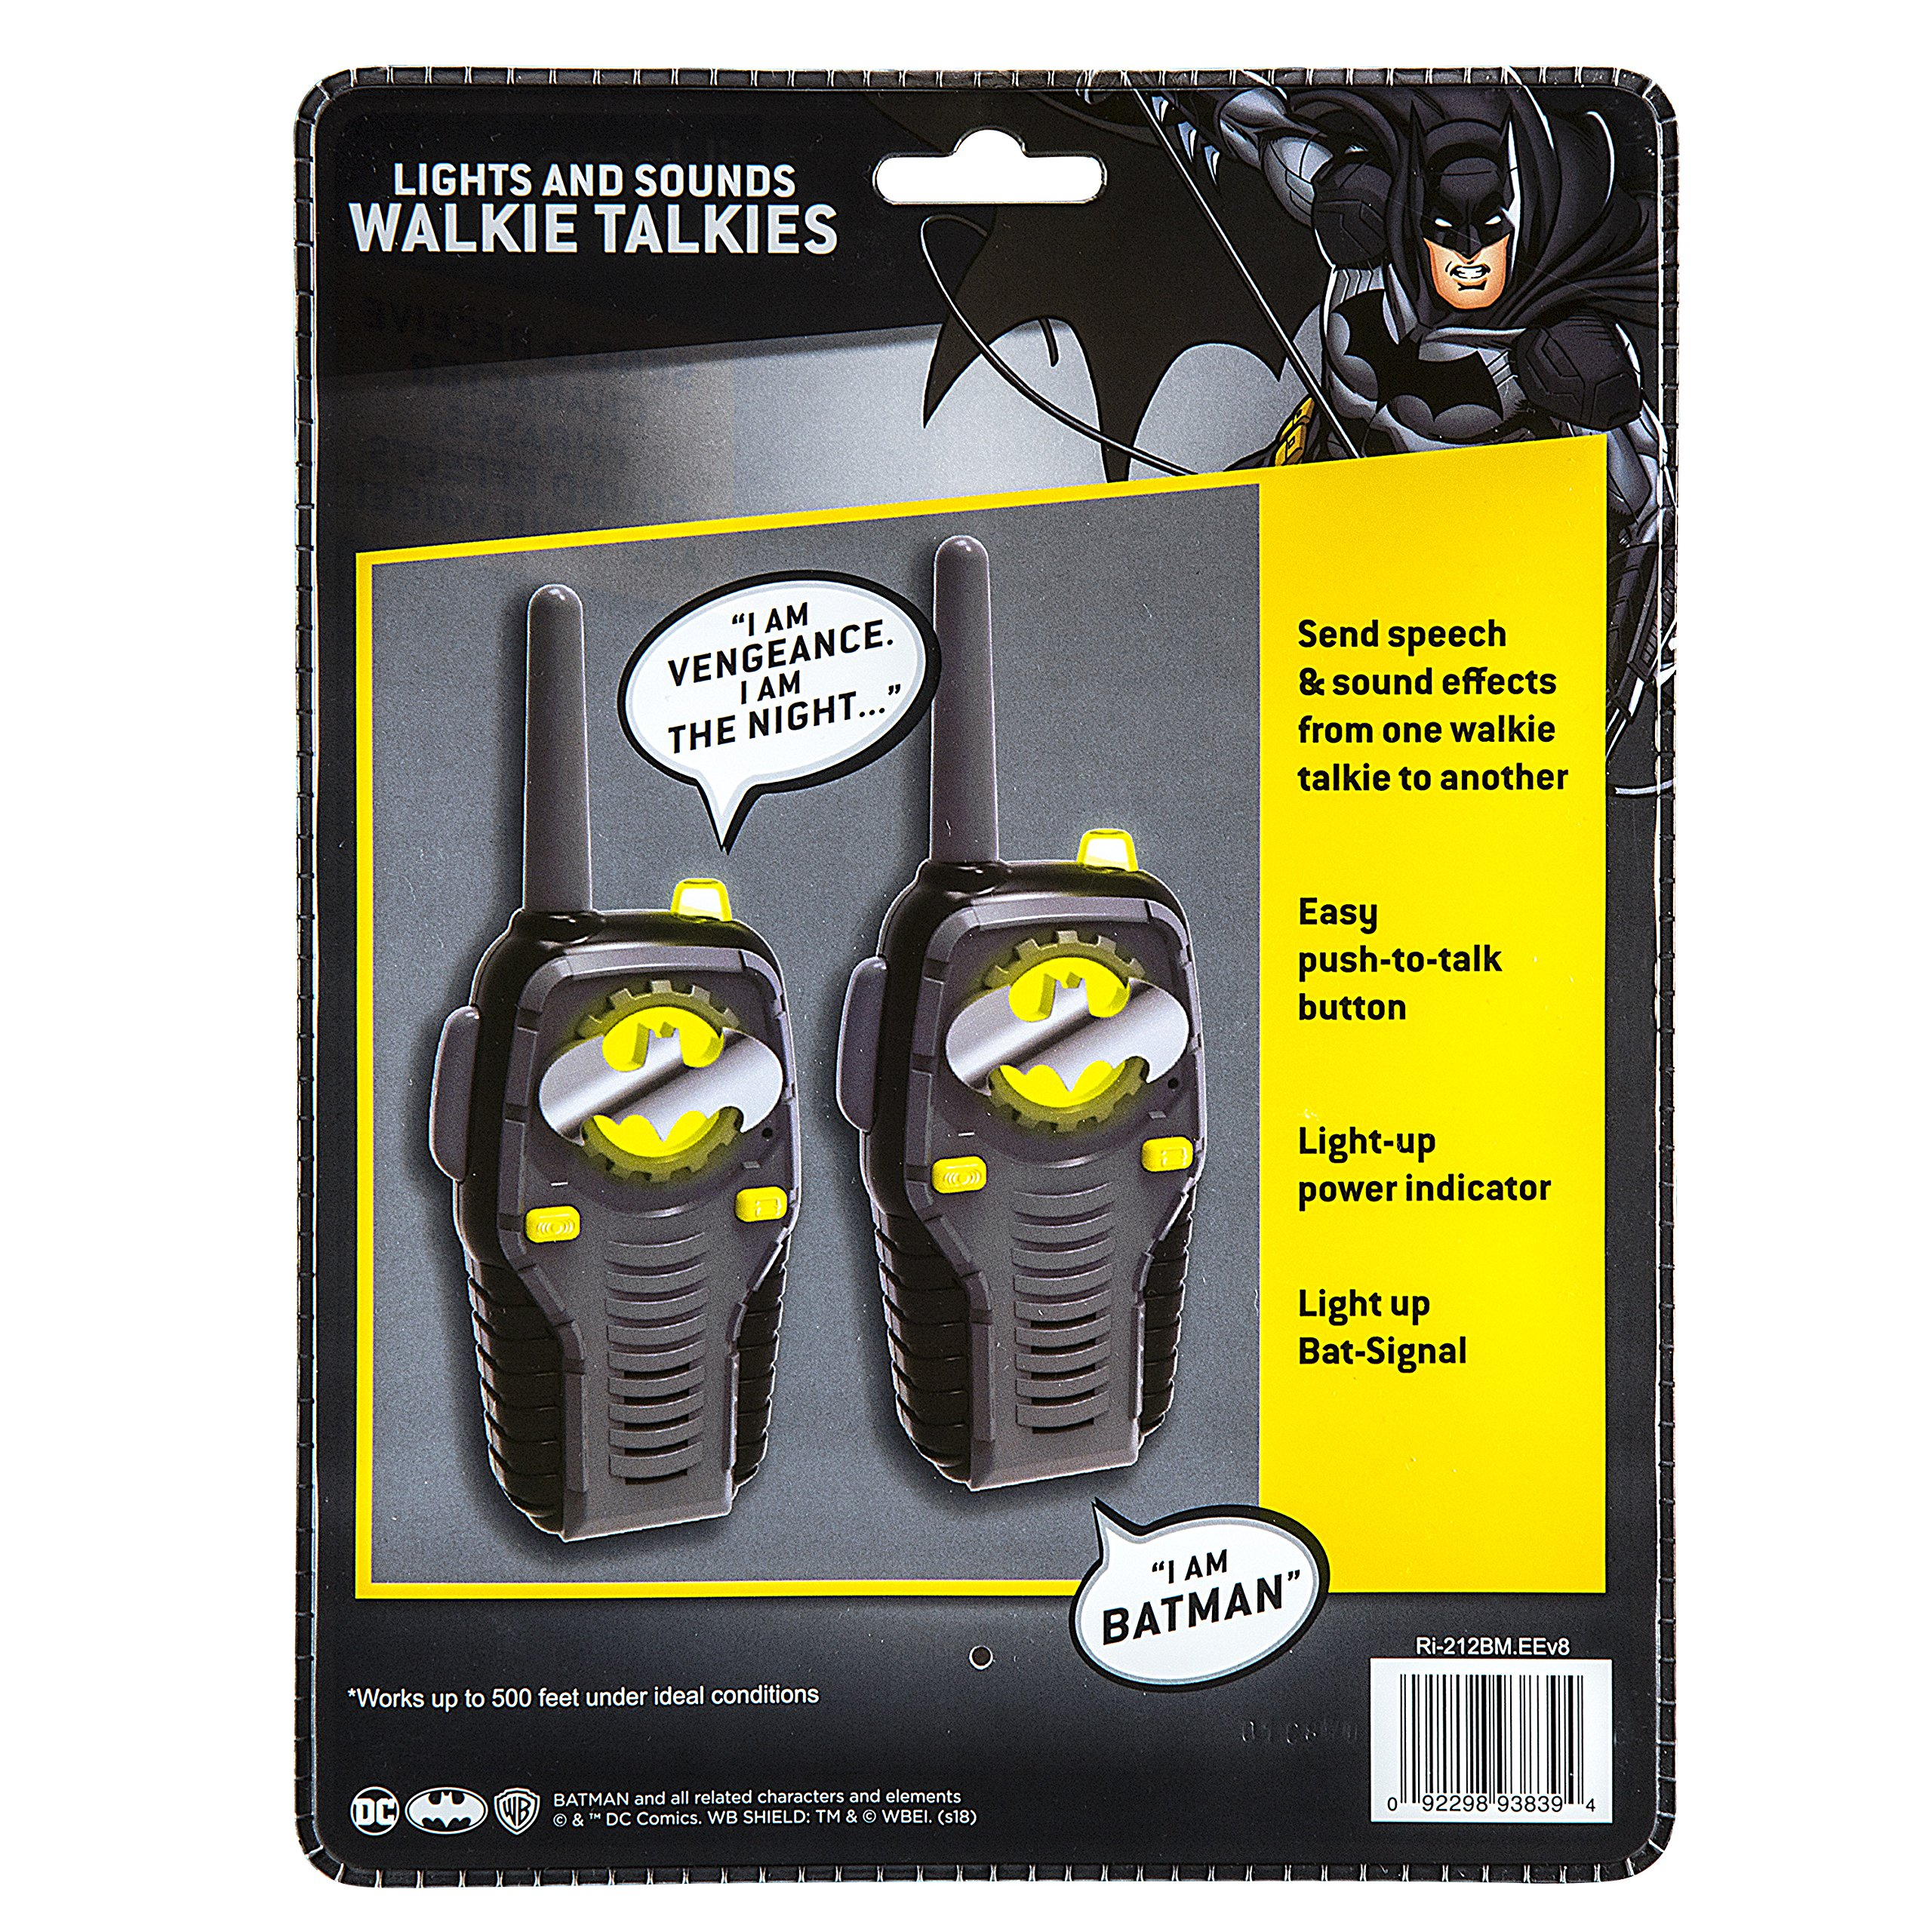 Batman FRS Walkie Talkies for Kids with Lights and Sounds Kid Friendly Easy to Use by eKids (Image #6)